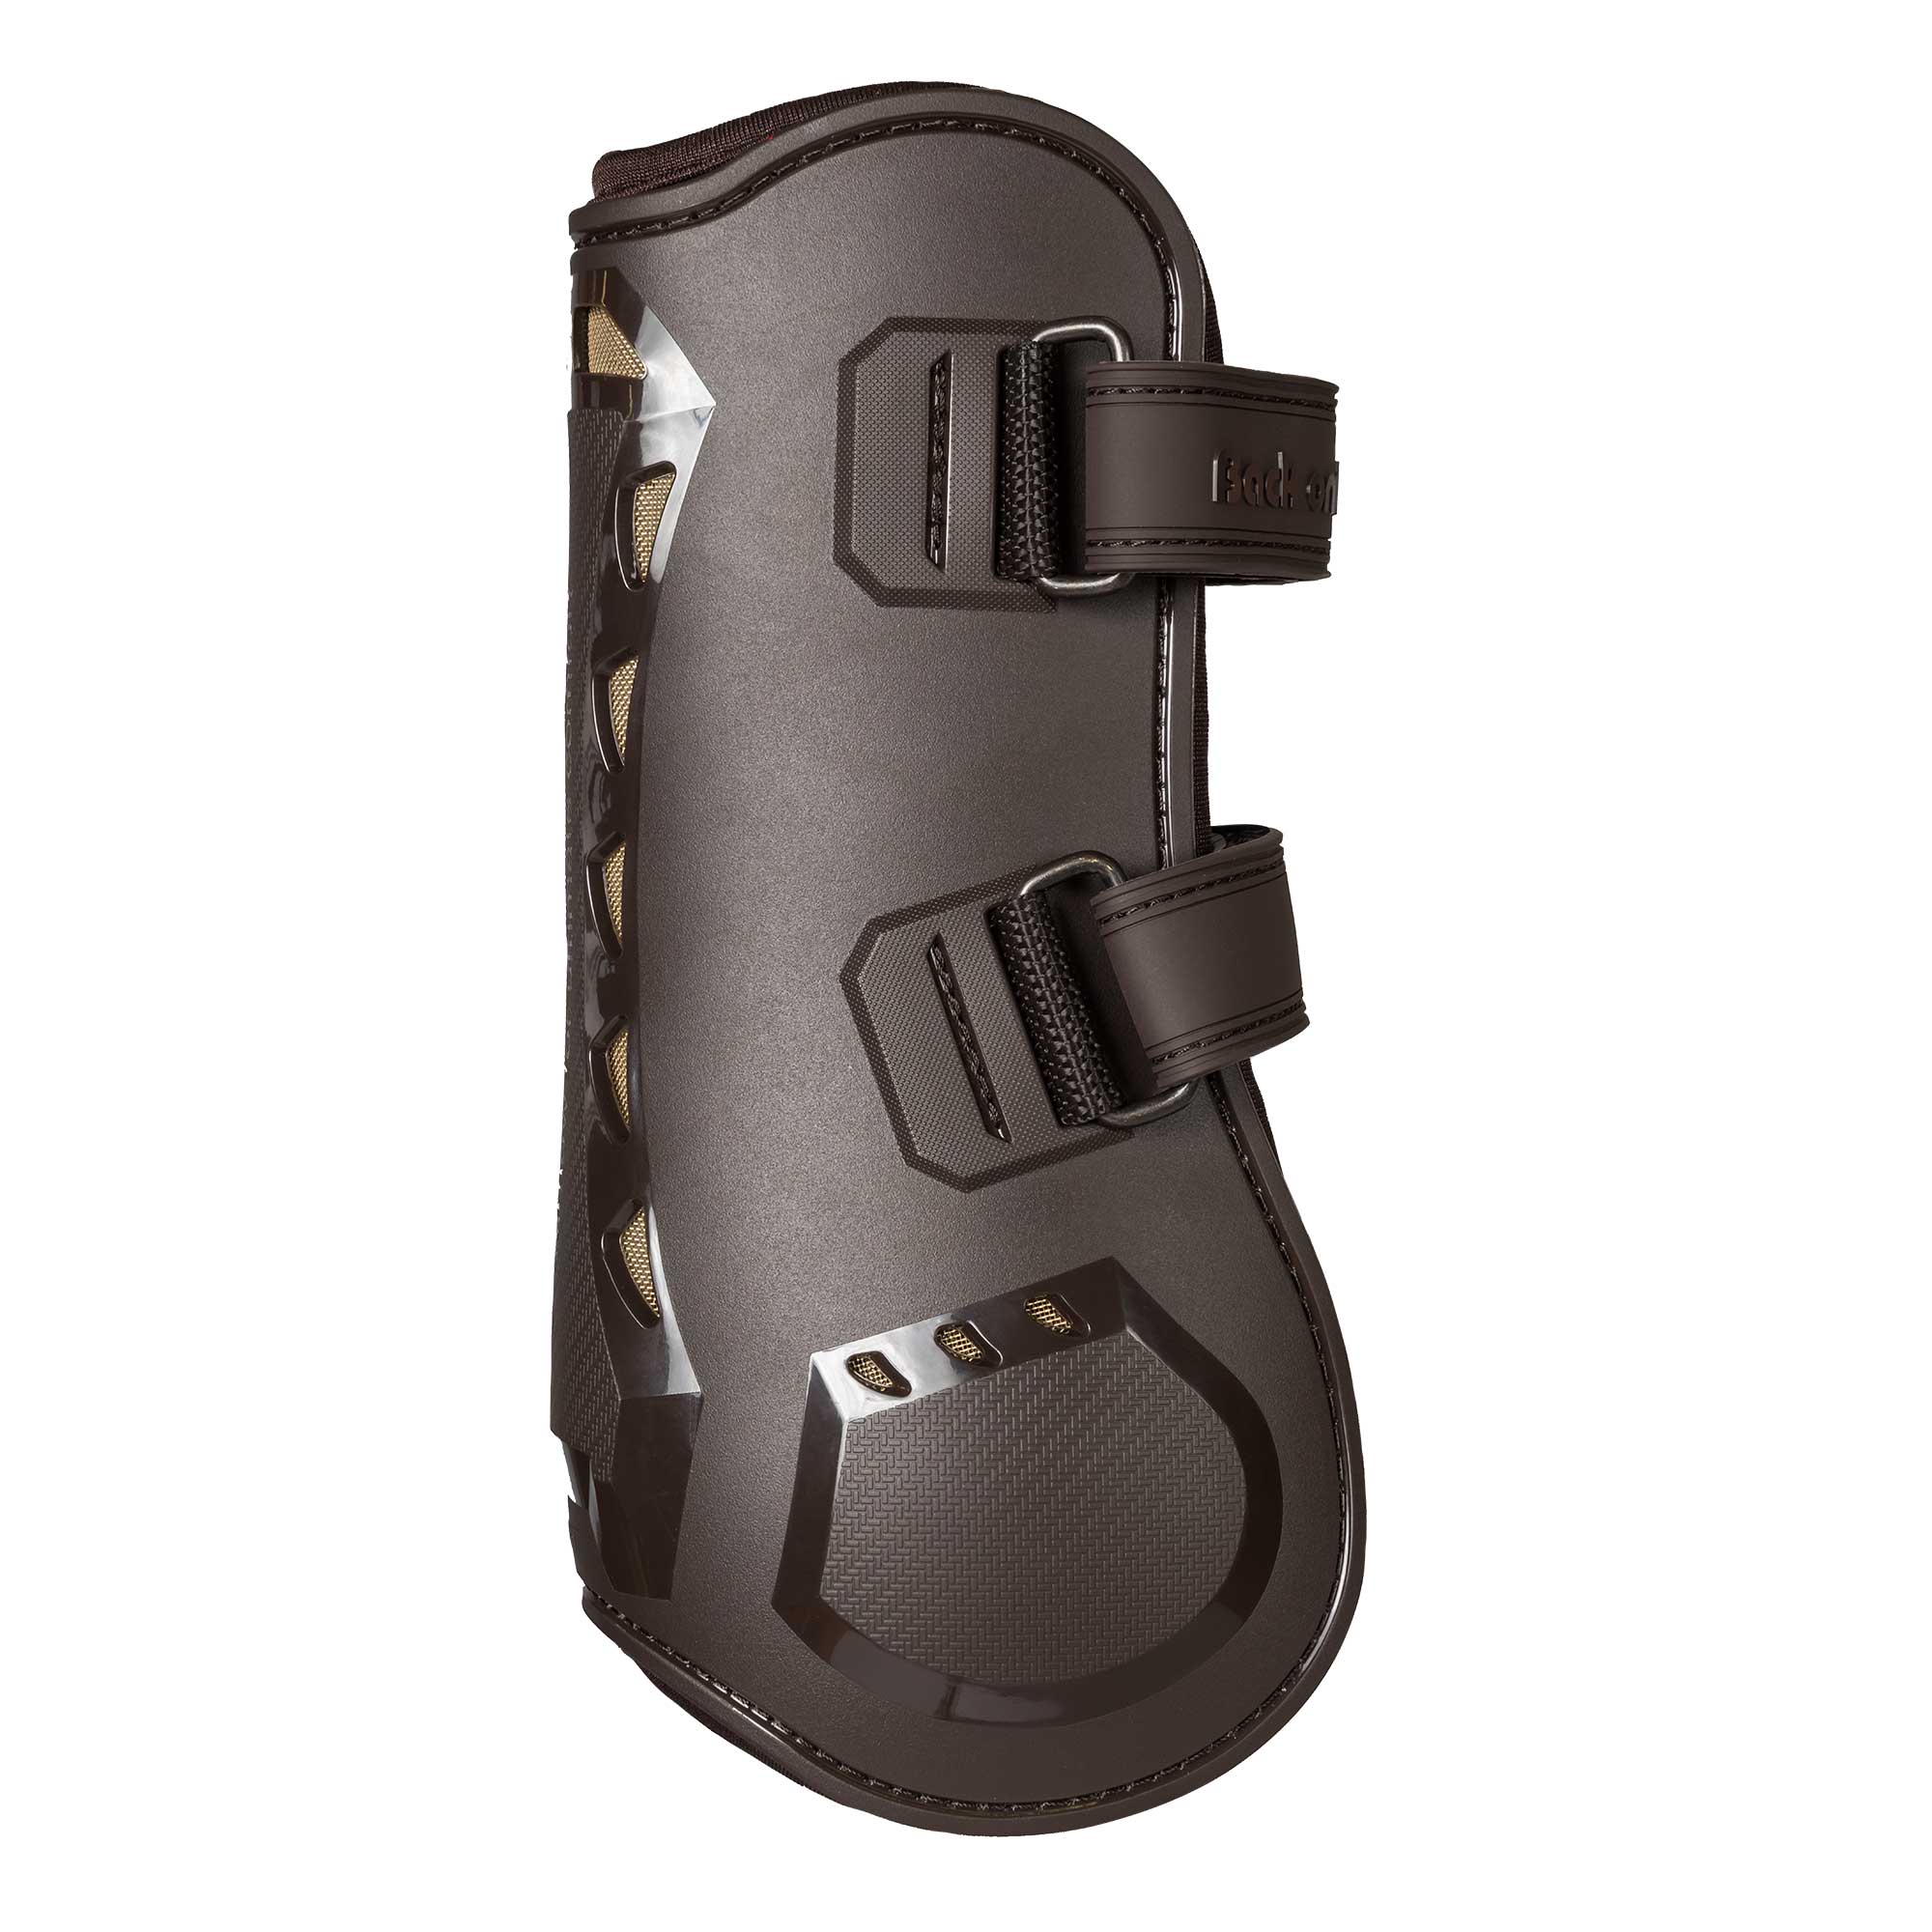 AirFlow Tendon boots